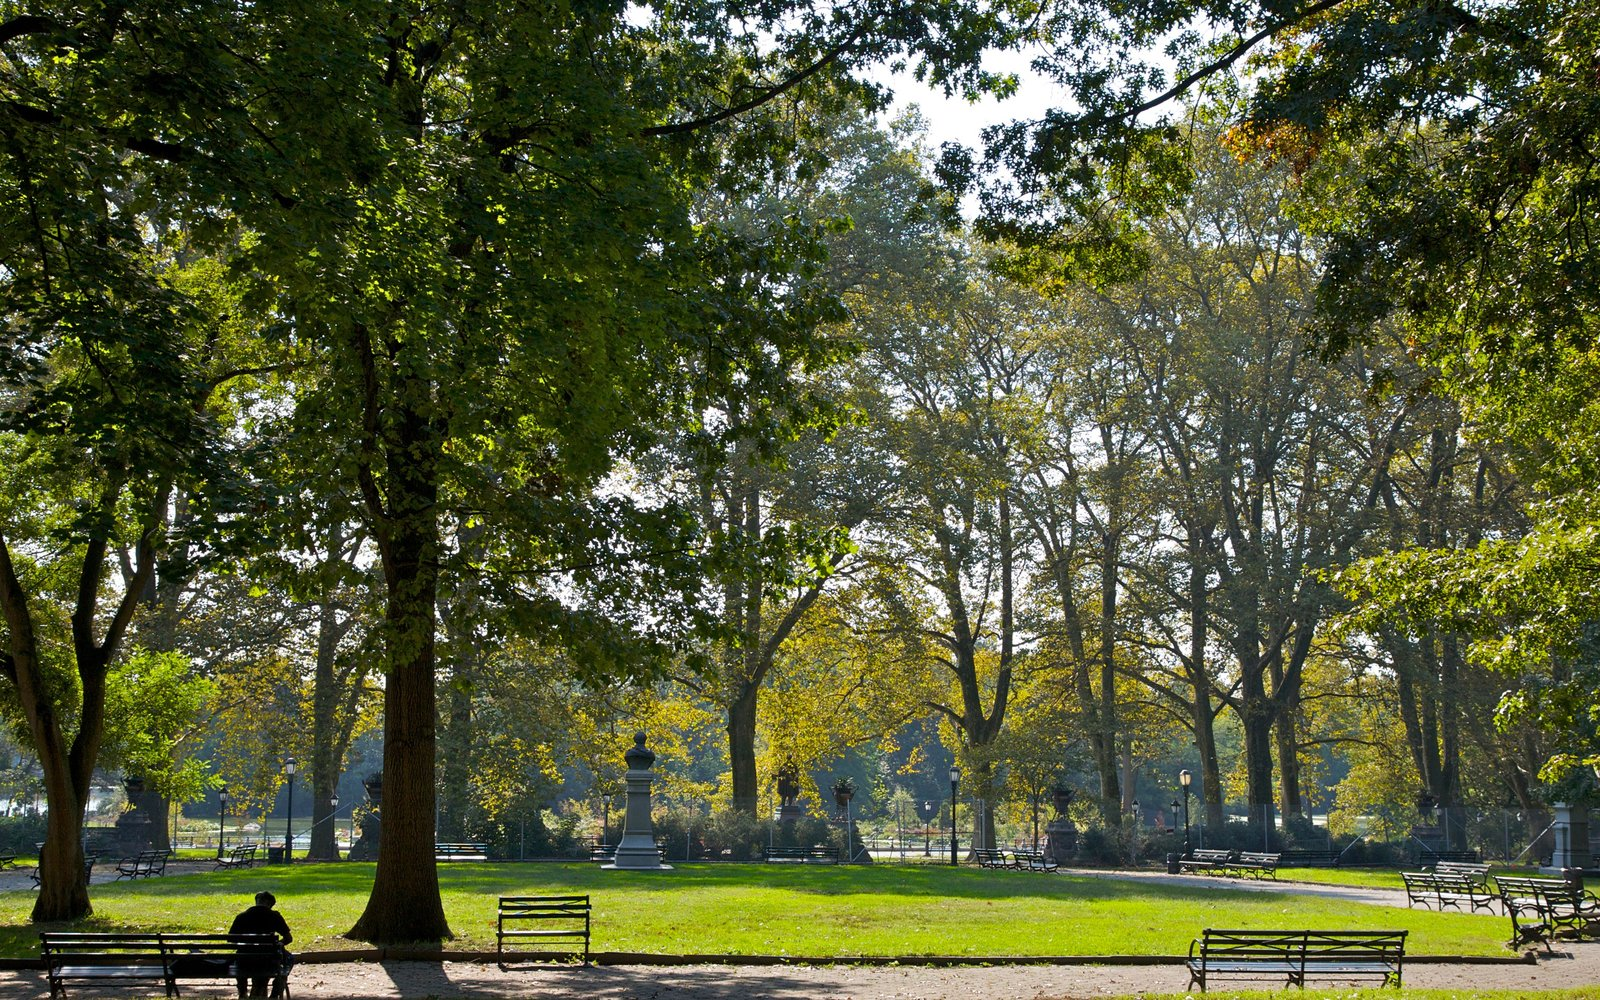 8 Things to Do at Prospect Park | Travel + Leisure